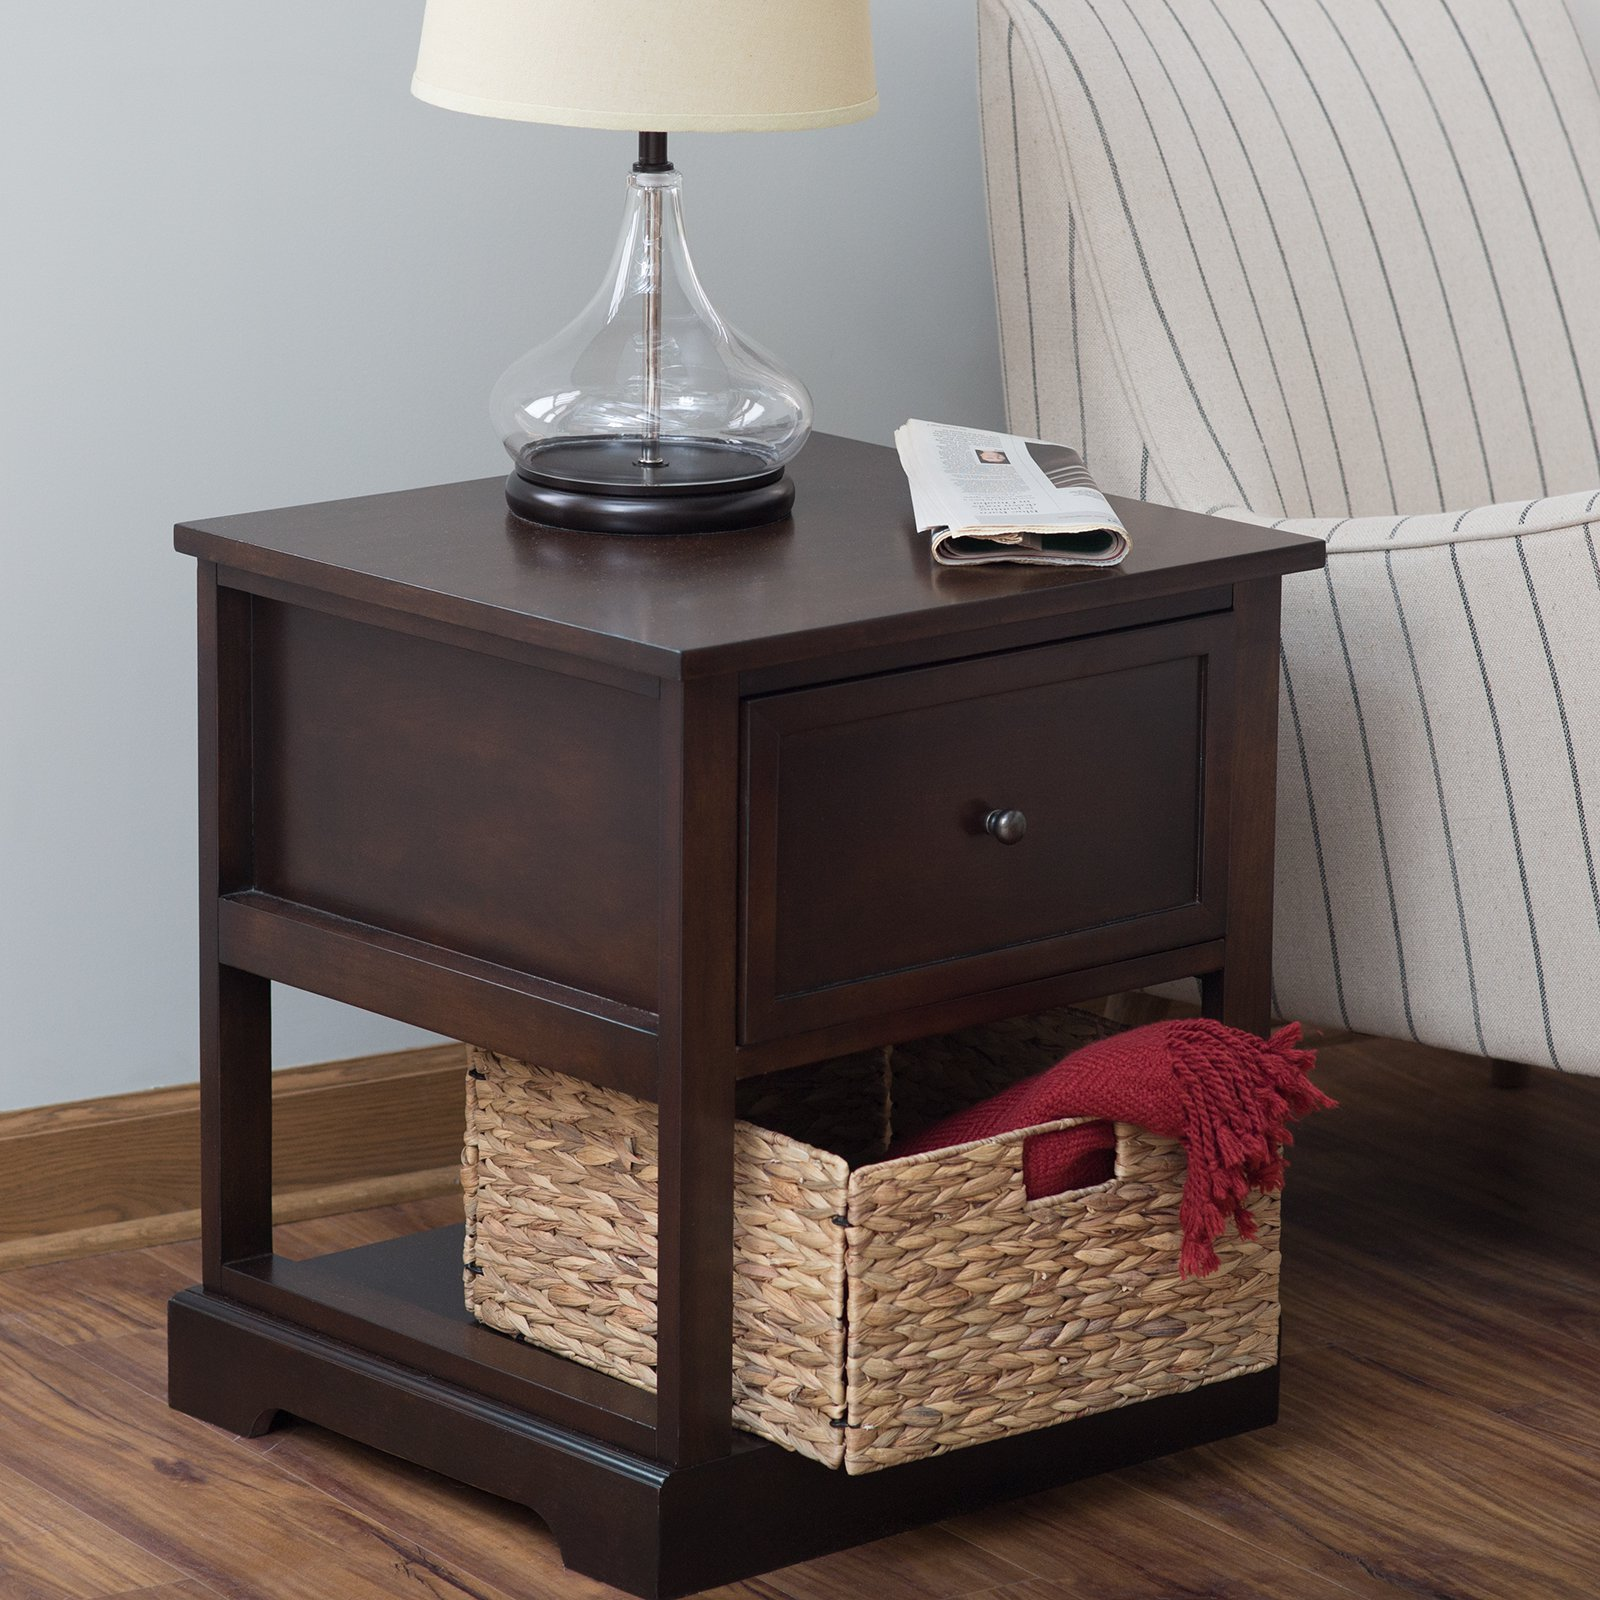 Belham Living Bradford End Table Walmartcom